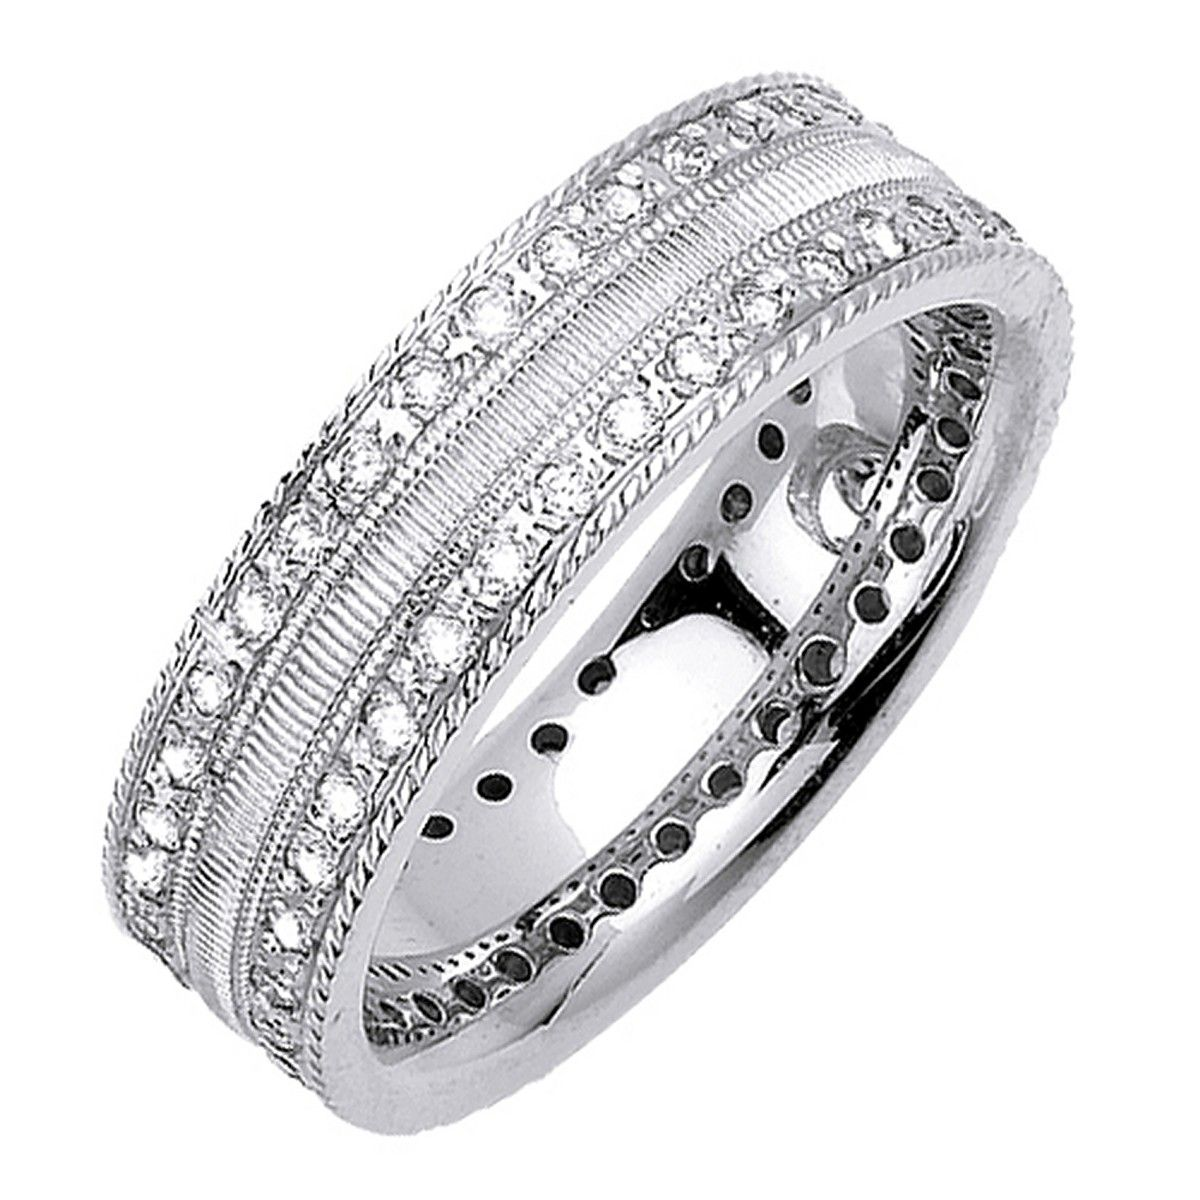 diamond bangle diamond ring diamond bracelet diamond jewelry fashion jewelry 2013 diamond fashion - Diamond Wedding Rings For Men